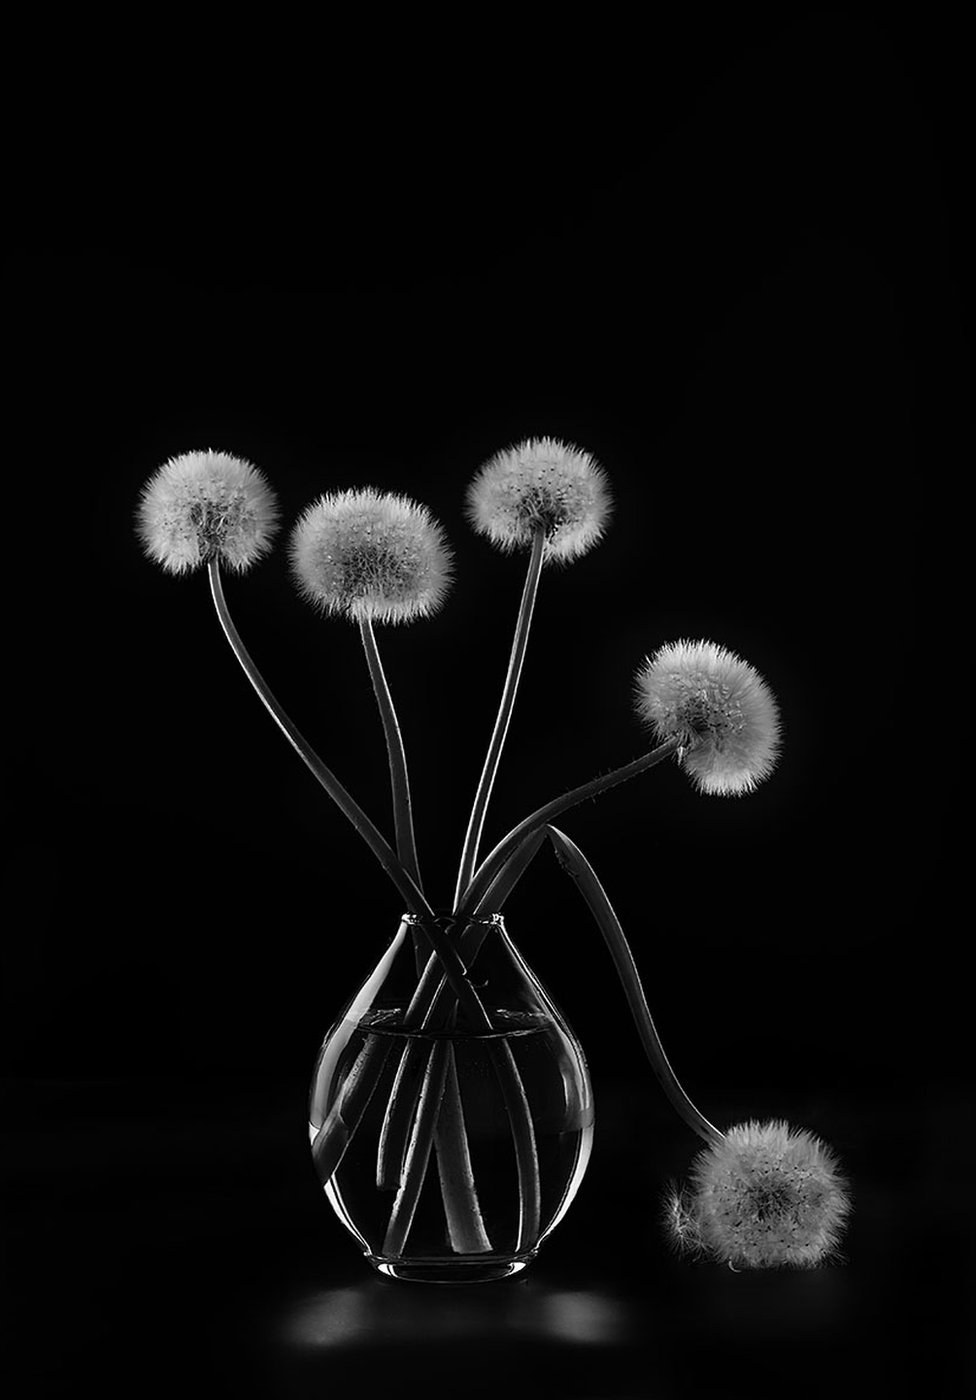 Dandelions in a glass vase